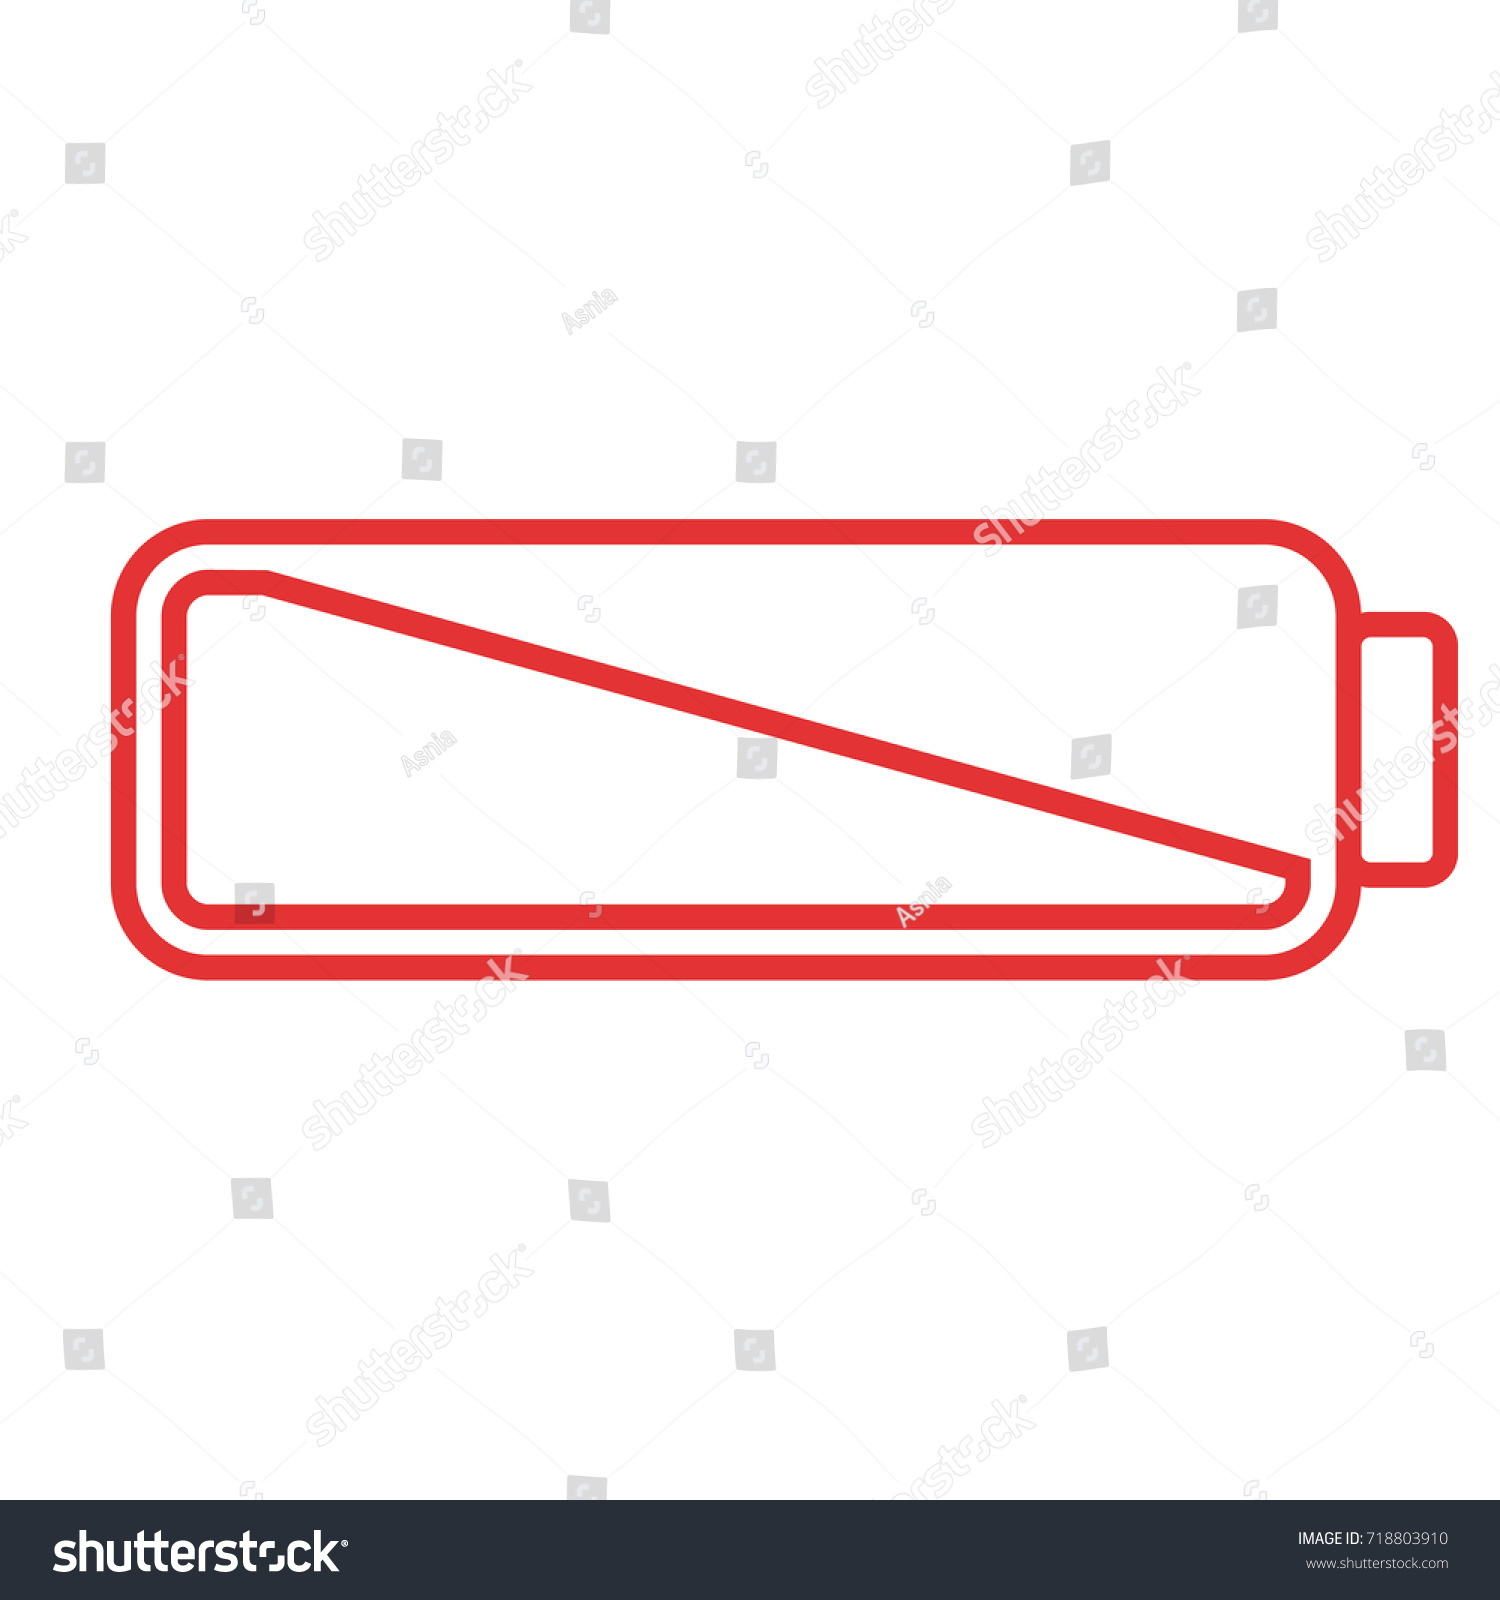 Smartphone Cell Phone Low Battery Icon Stock Vector 718803910 ...